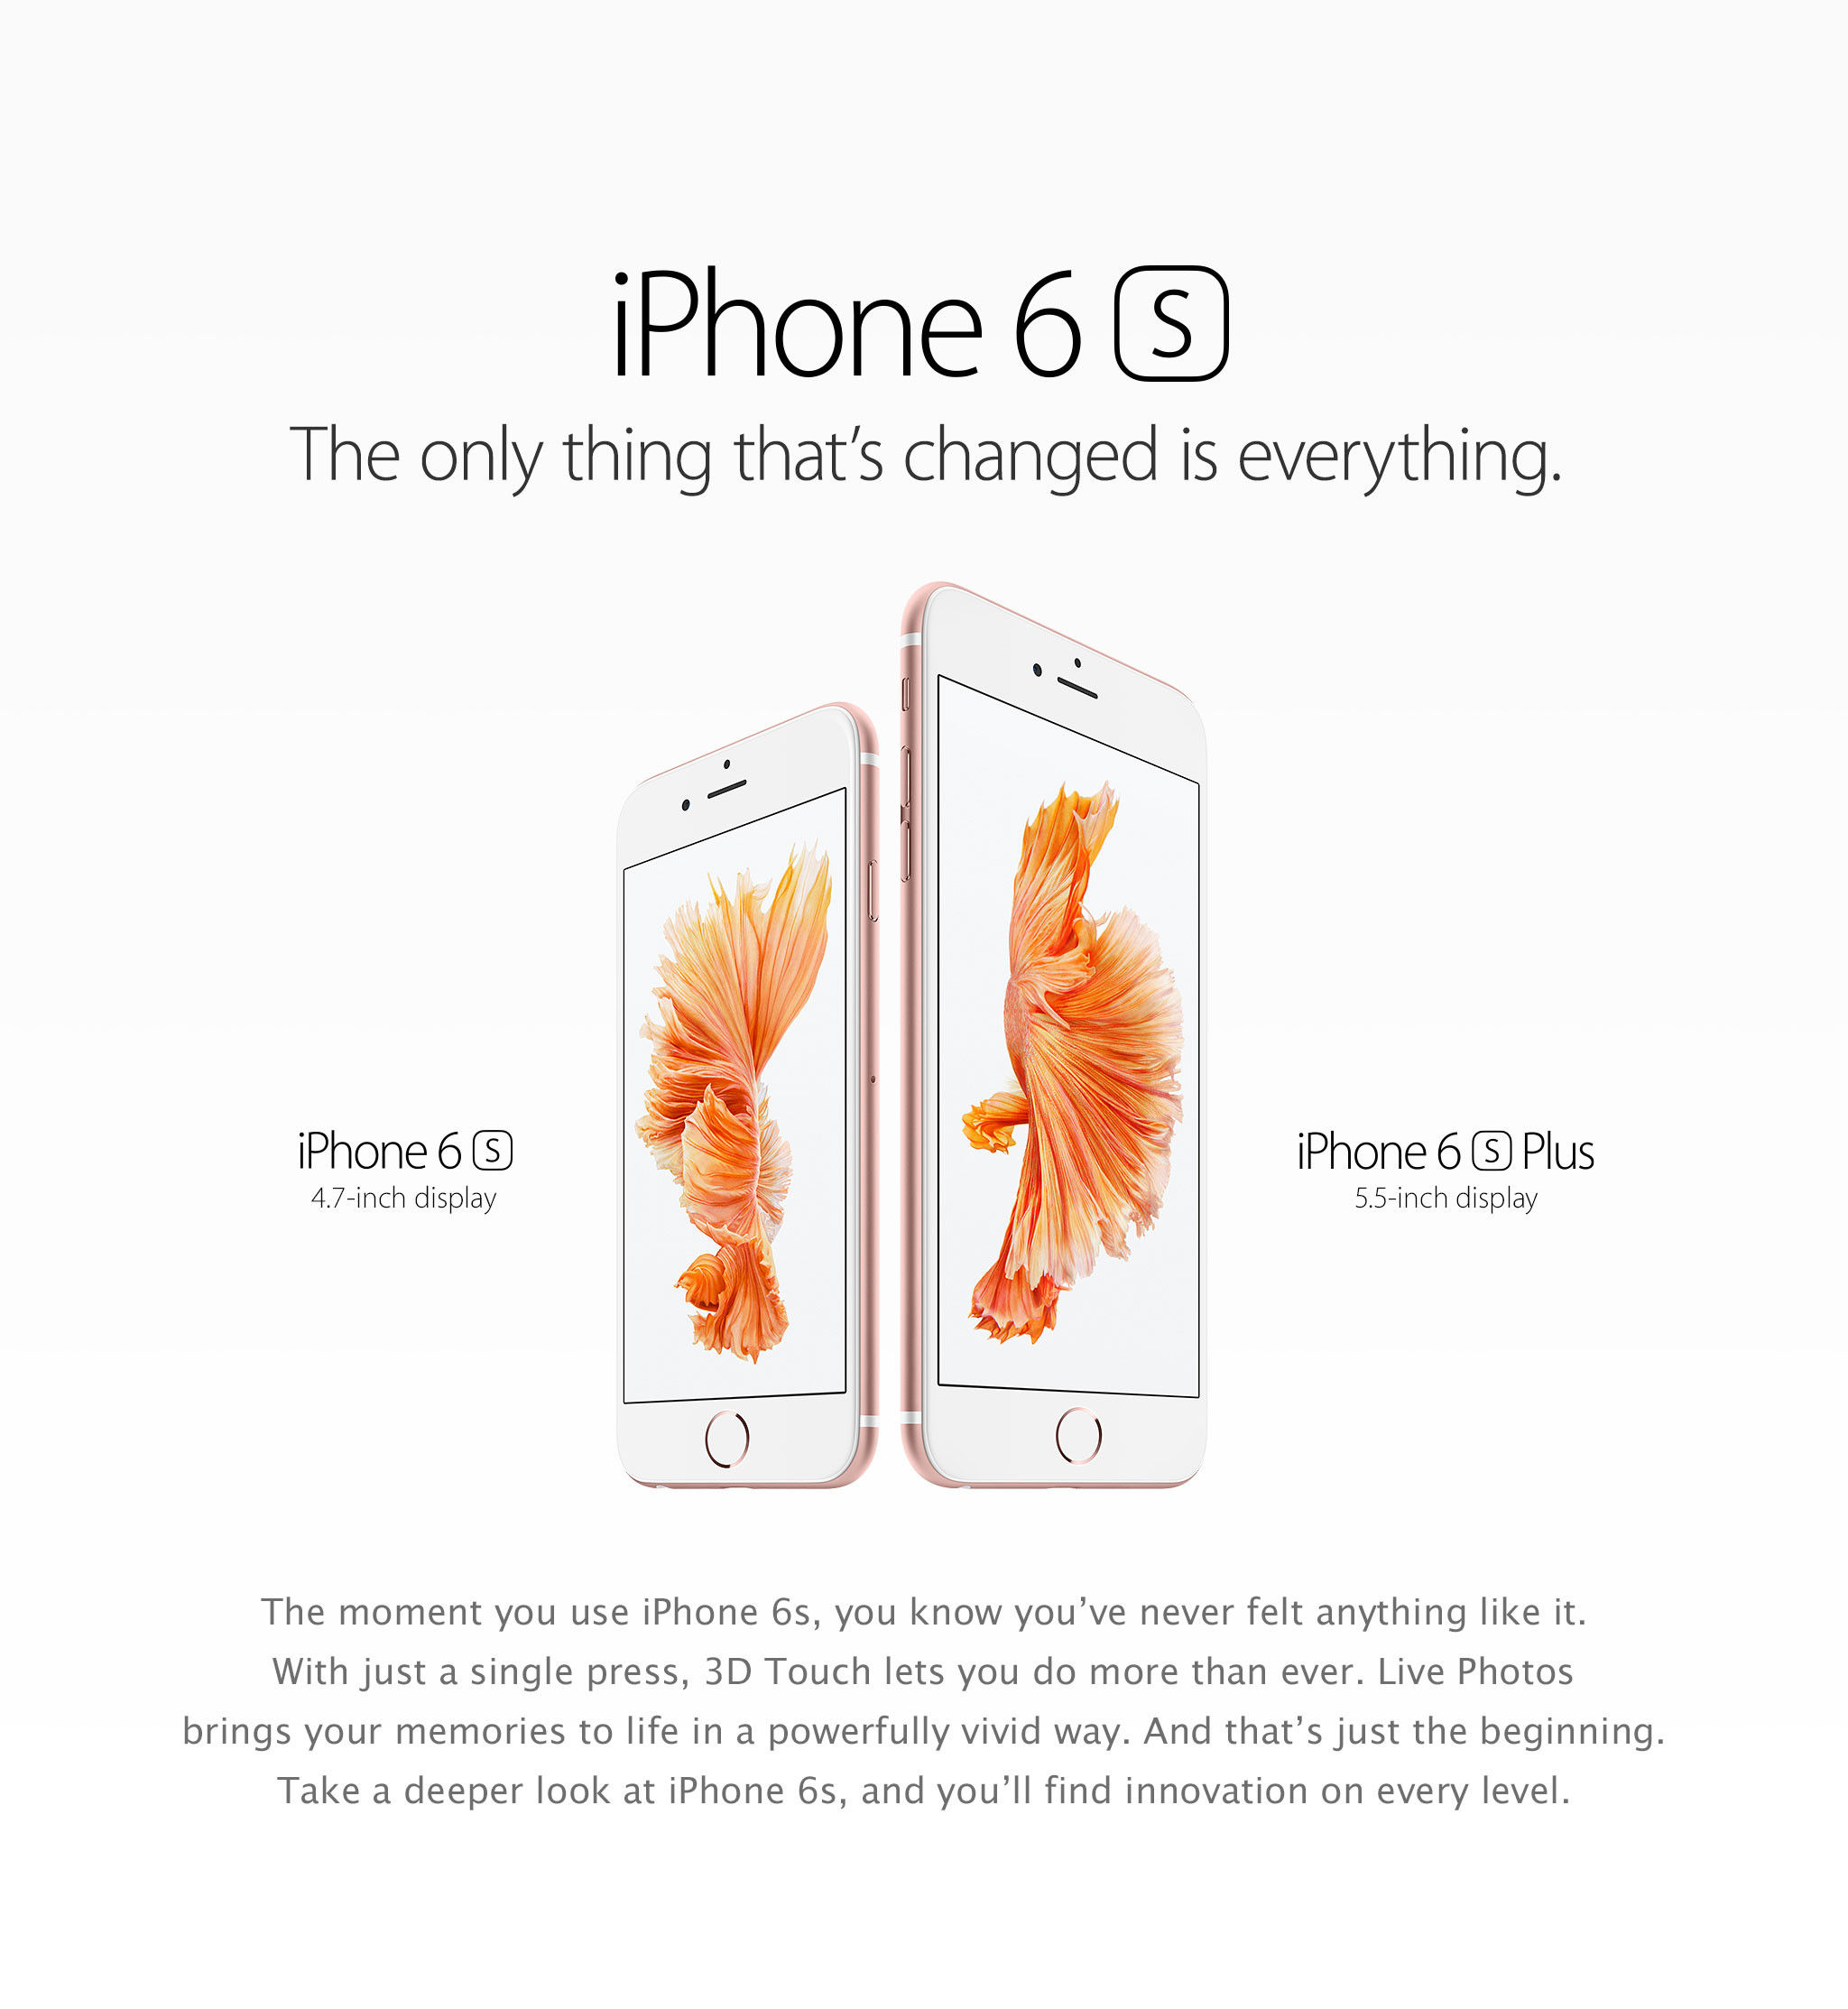 iPhone 6s. The only thing that's changed is everything. iPhone 6s: 4.7-inch display. iPhone 6s Plus: 5.5-inch display. The moment you use iPhone 6s, you know you've never felt anything like it. With just a single press, 3D Touch lets you do more than ever. Live Photos brings your memories to life in a powerfully vivid way. And that's just the beginning. Take a deeper look at iPhone 6s, and you'll find innovation on every level.